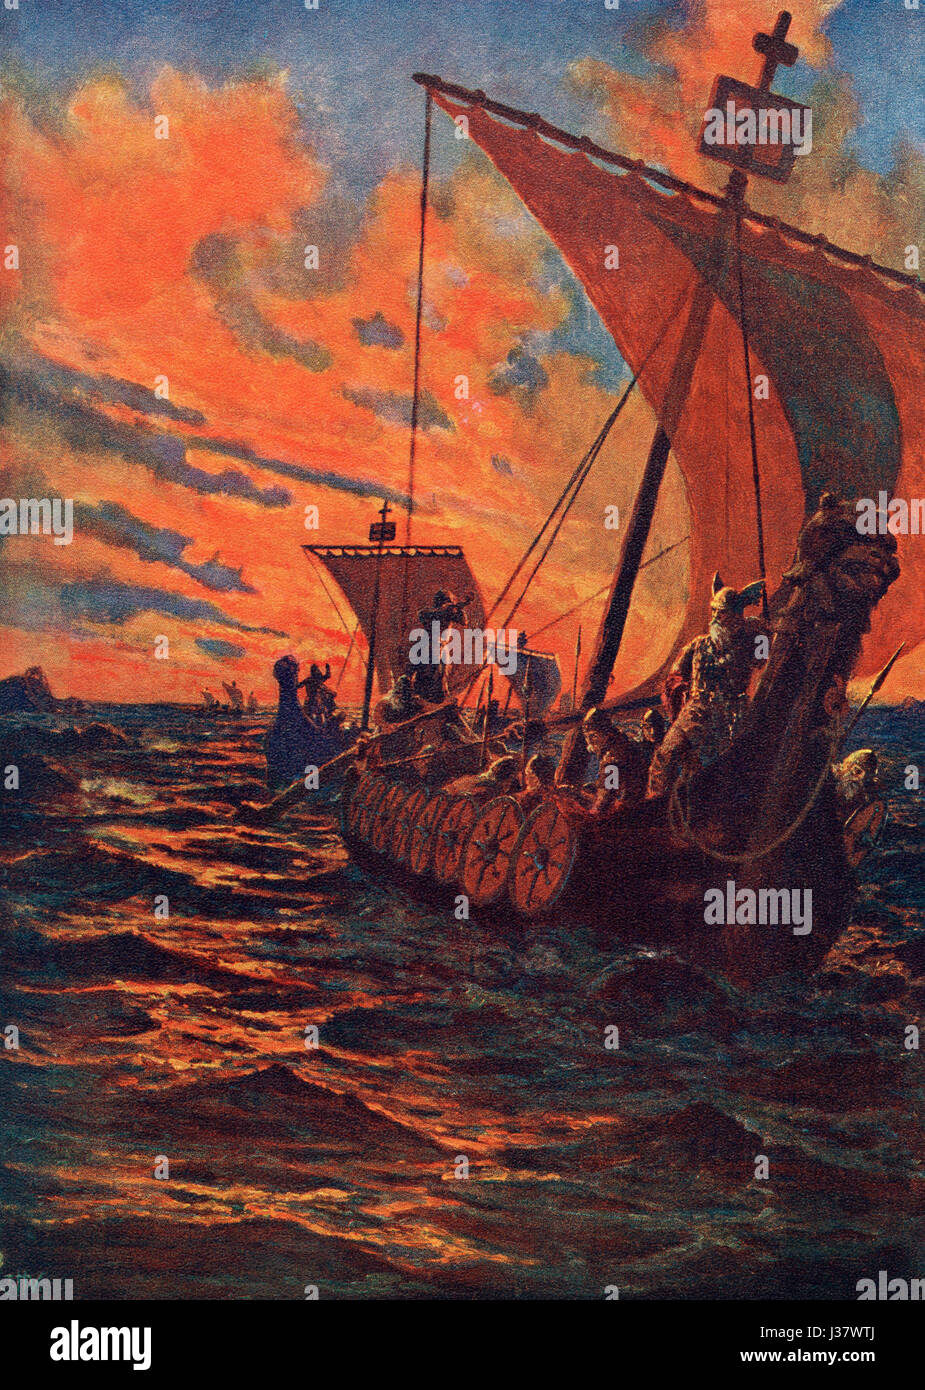 The return home of a Viking fleet after a raid.  From Hutchinson's History of the Nations, published 1915. - Stock Image